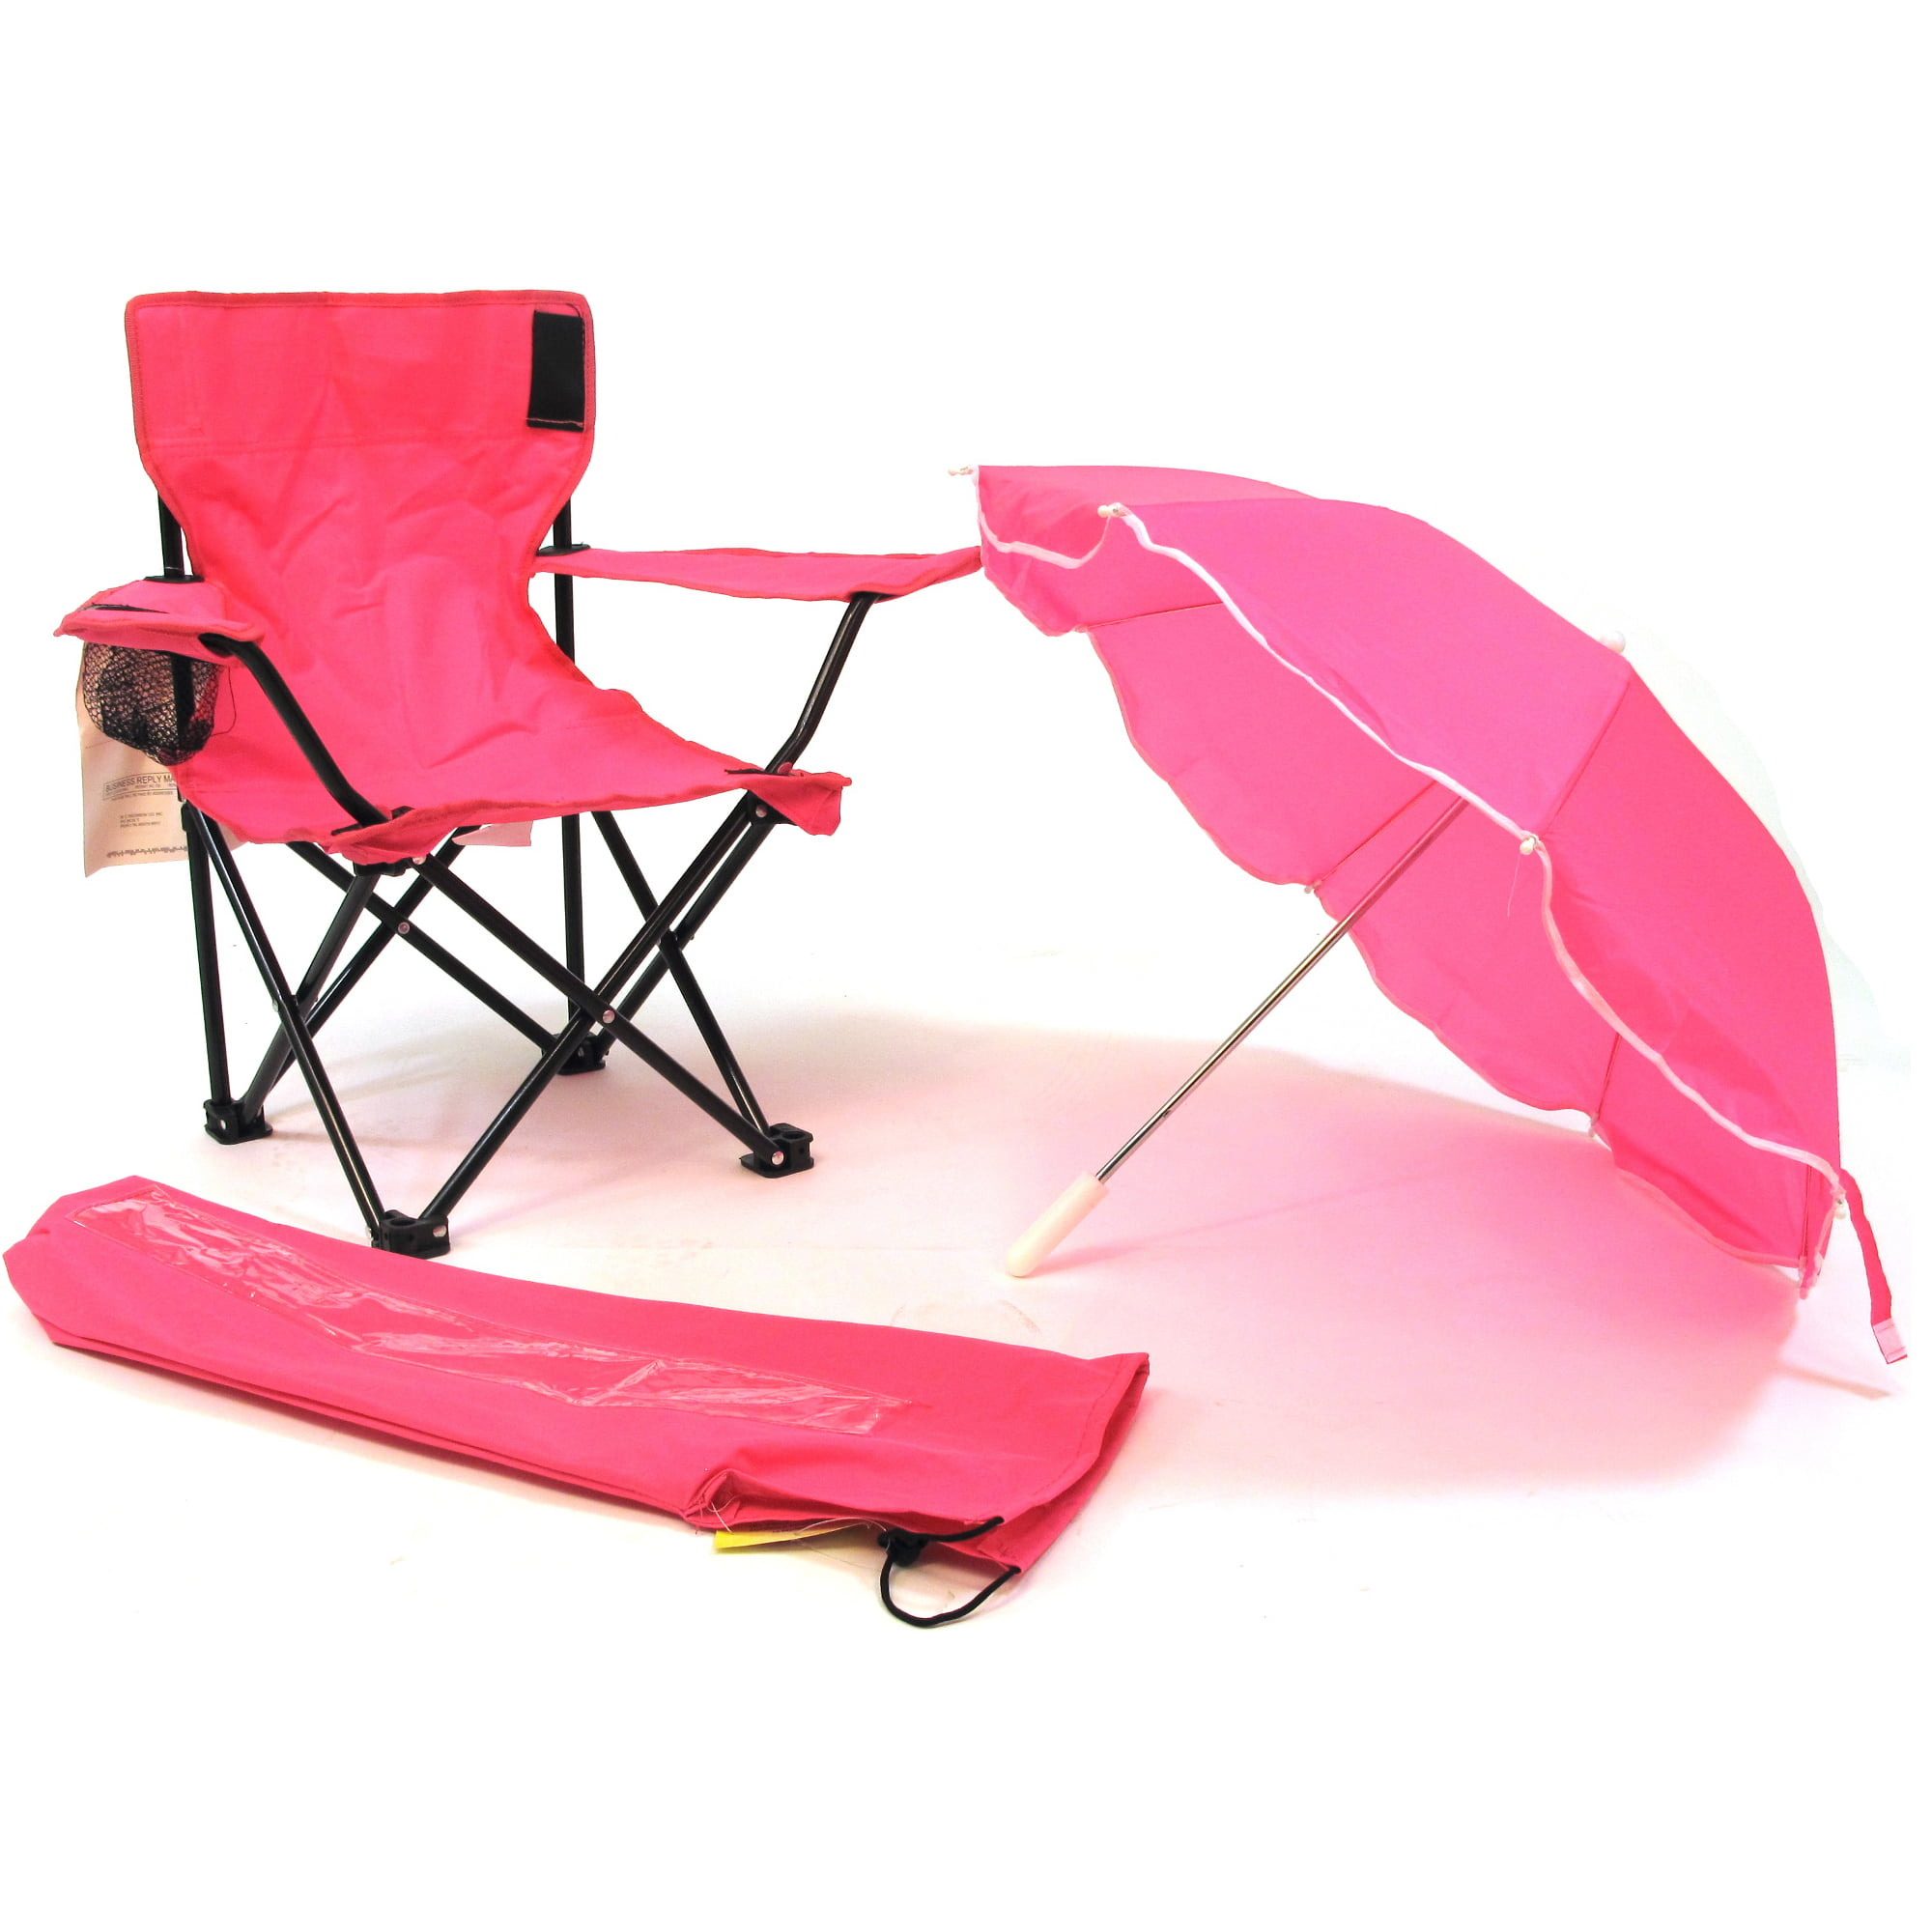 Beach Baby All Season Umbrella Chair With Matching Shoulder Bag Walmart Com Walmart Com